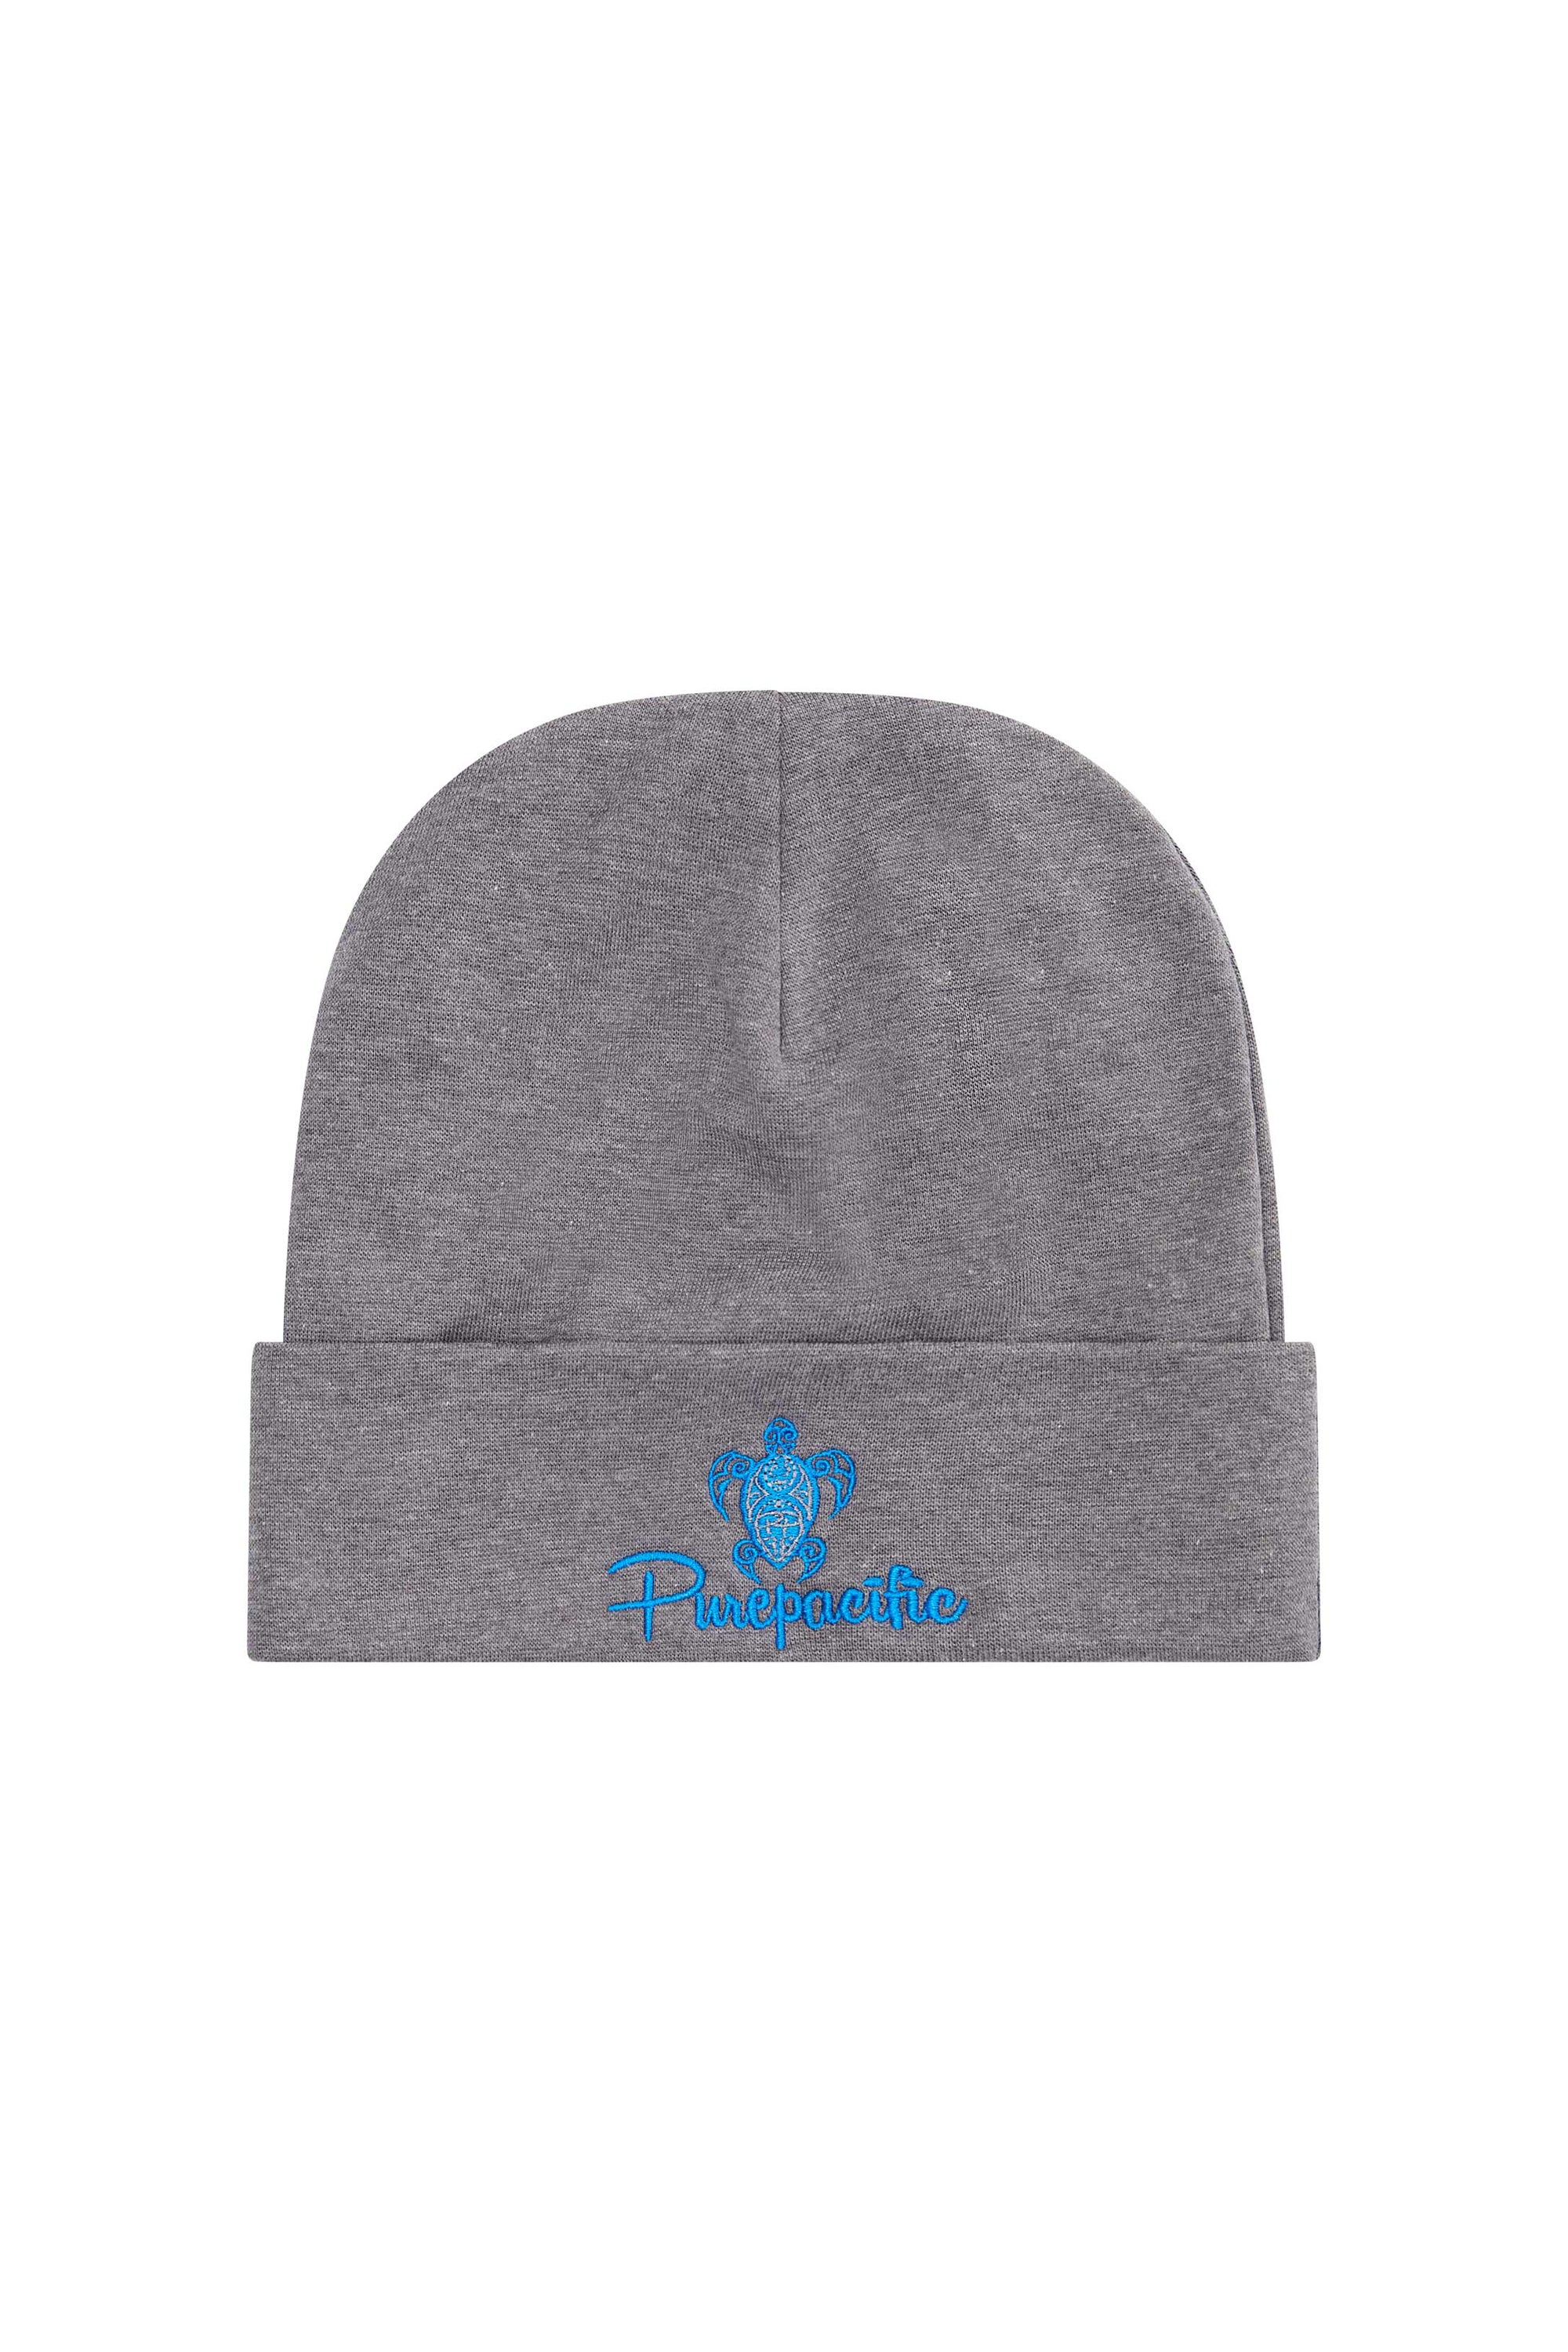 Embroidered Unisex Organic RPET Beanie